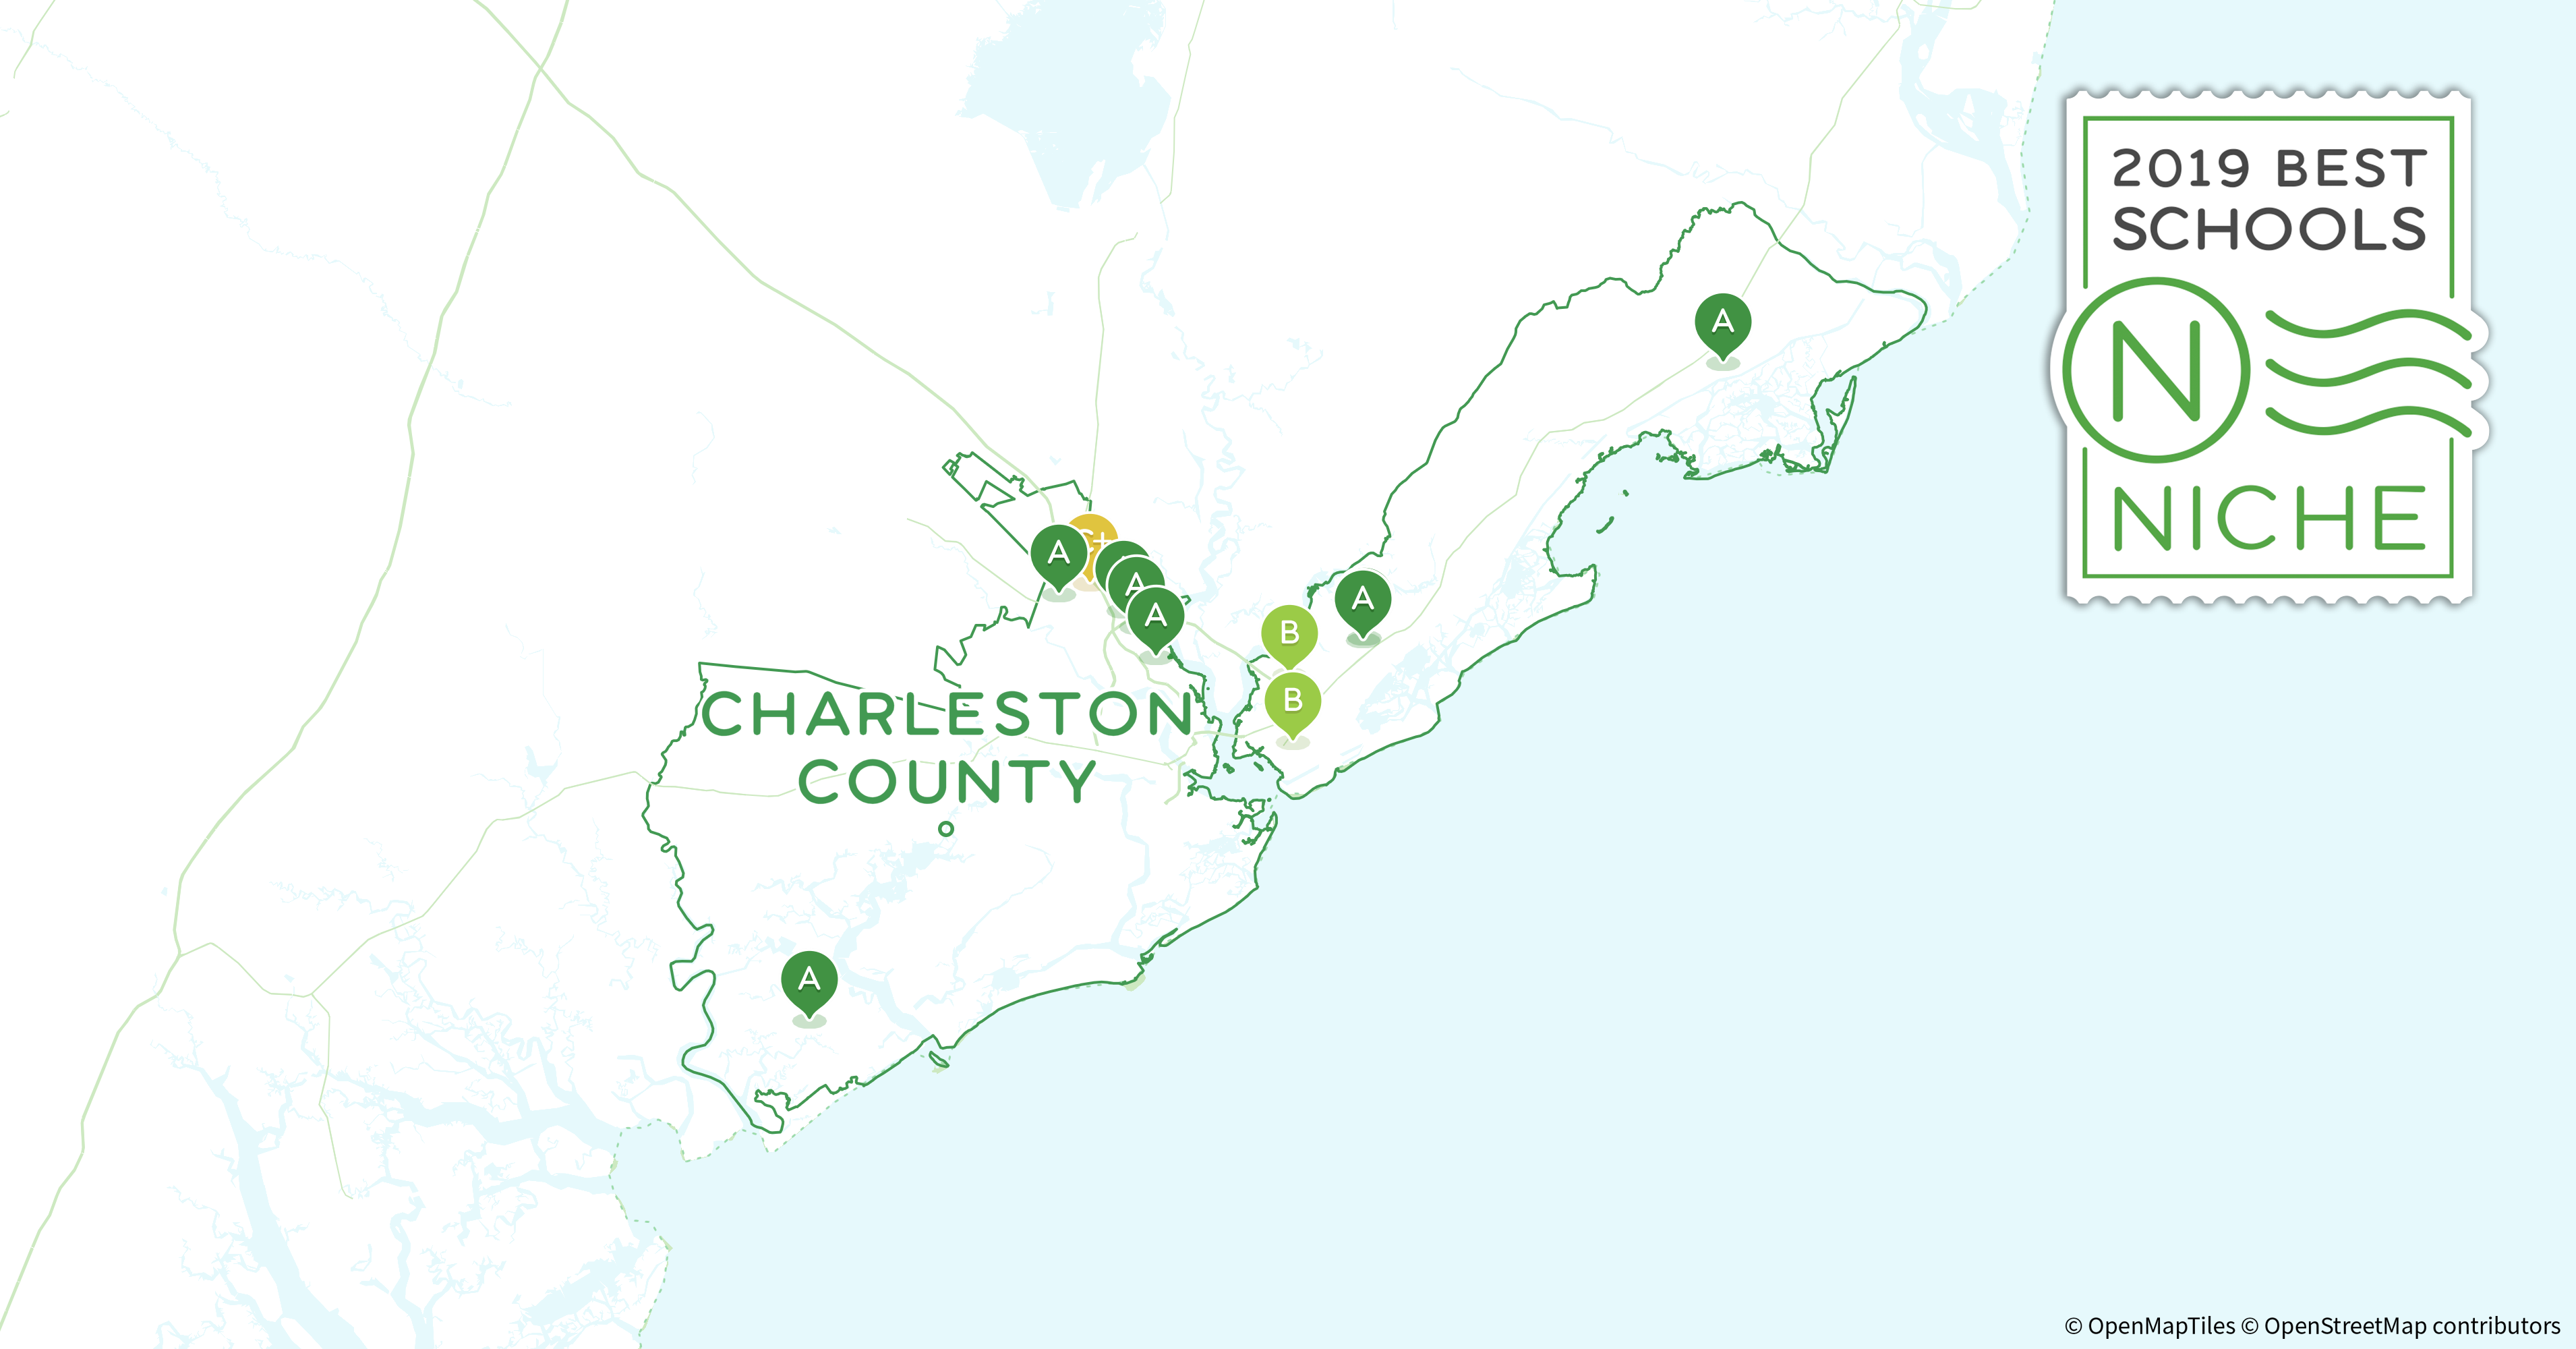 Mount Pleasant Sc Zip Code Map.2019 Best Private High Schools In Charleston County Sc Niche